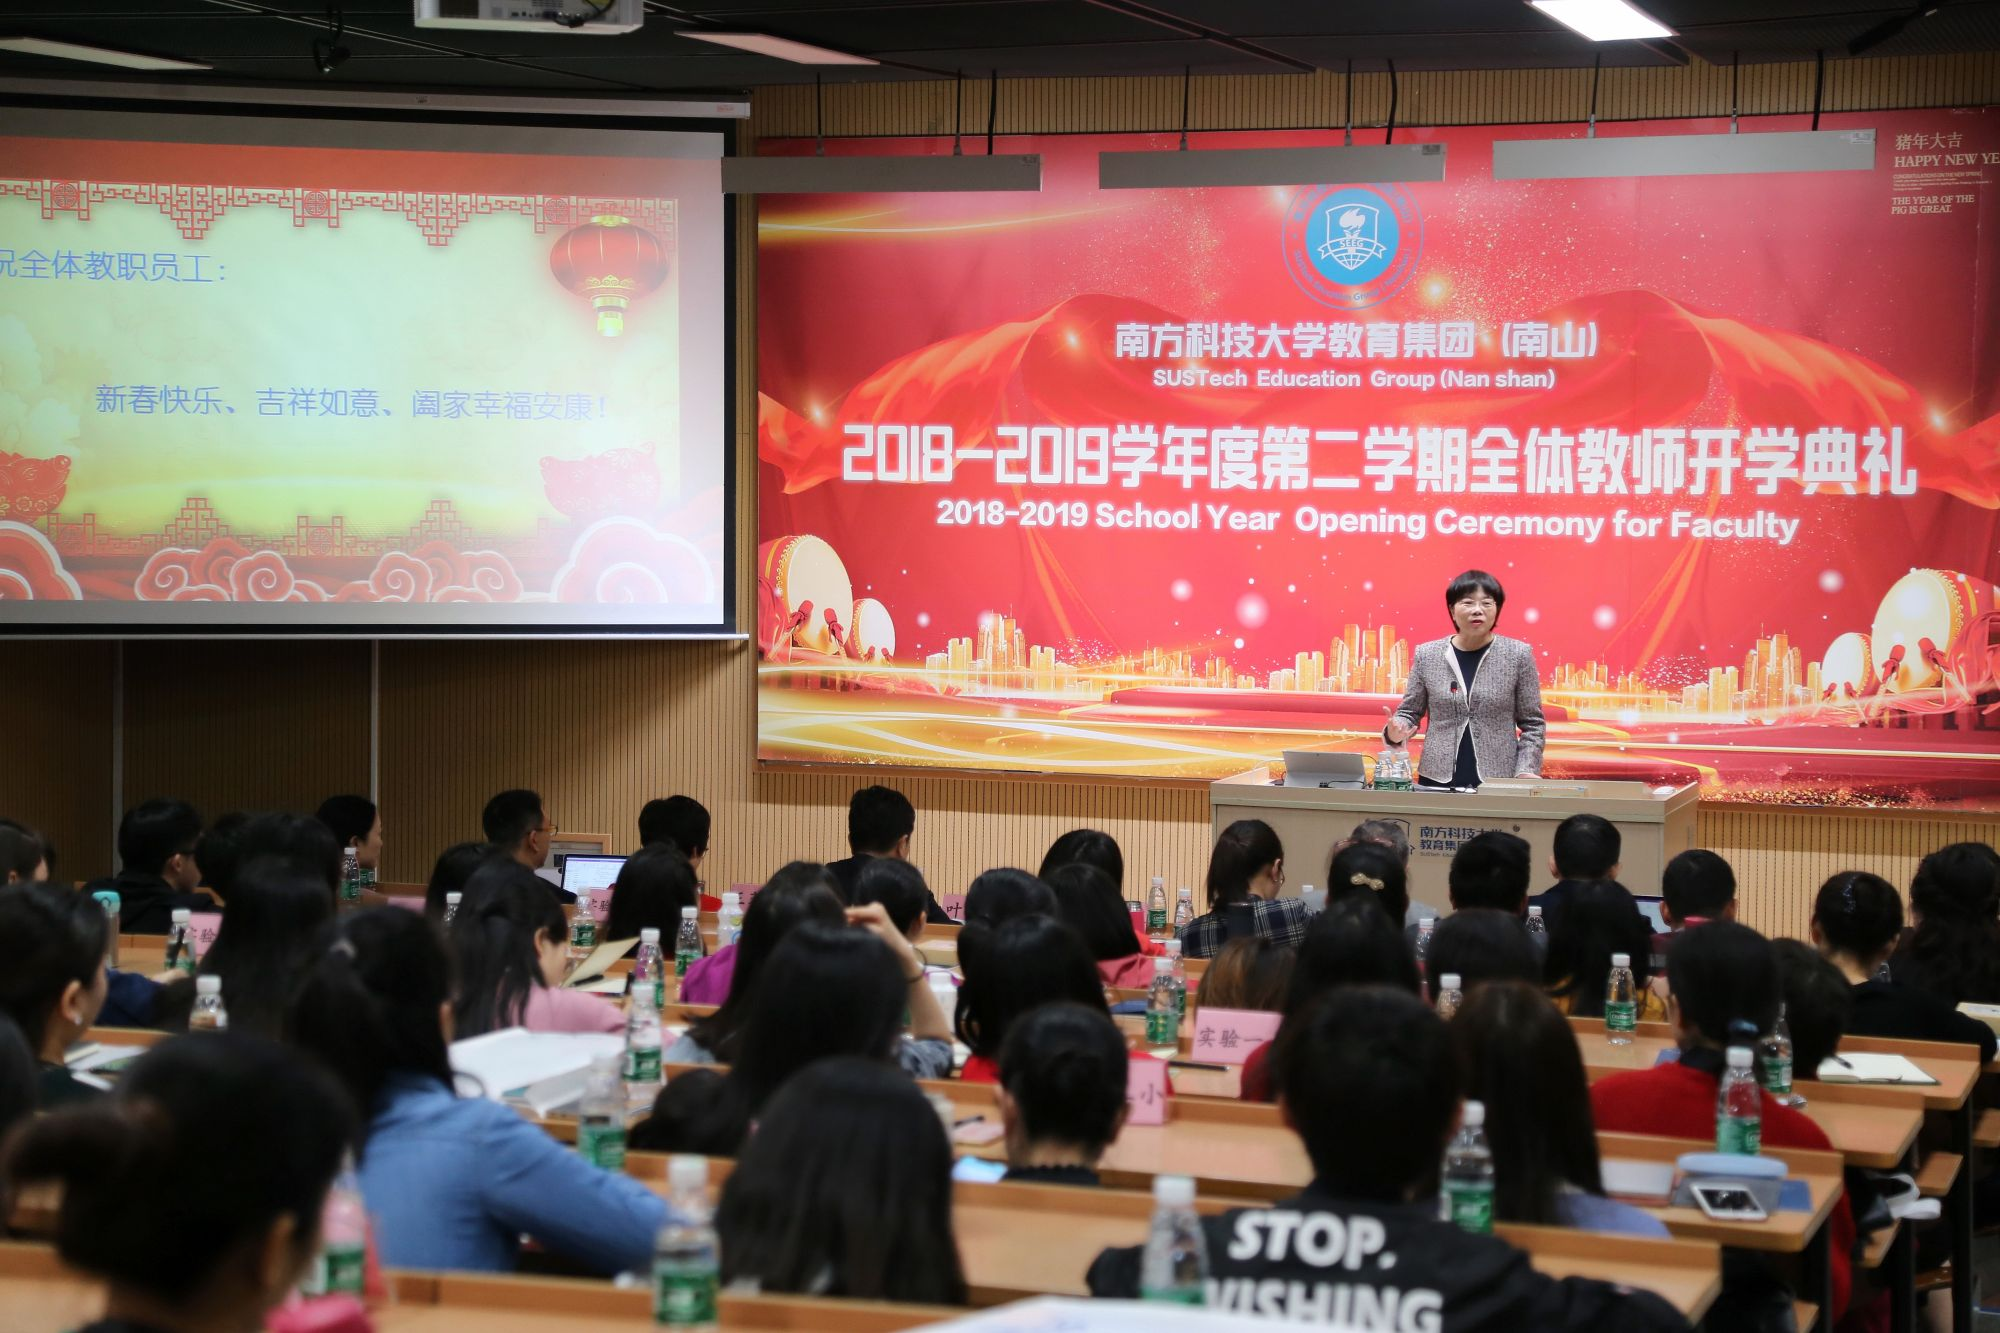 SUSTech Experimental Education Group (Nanshan) holds opening ceremony for 2nd semester